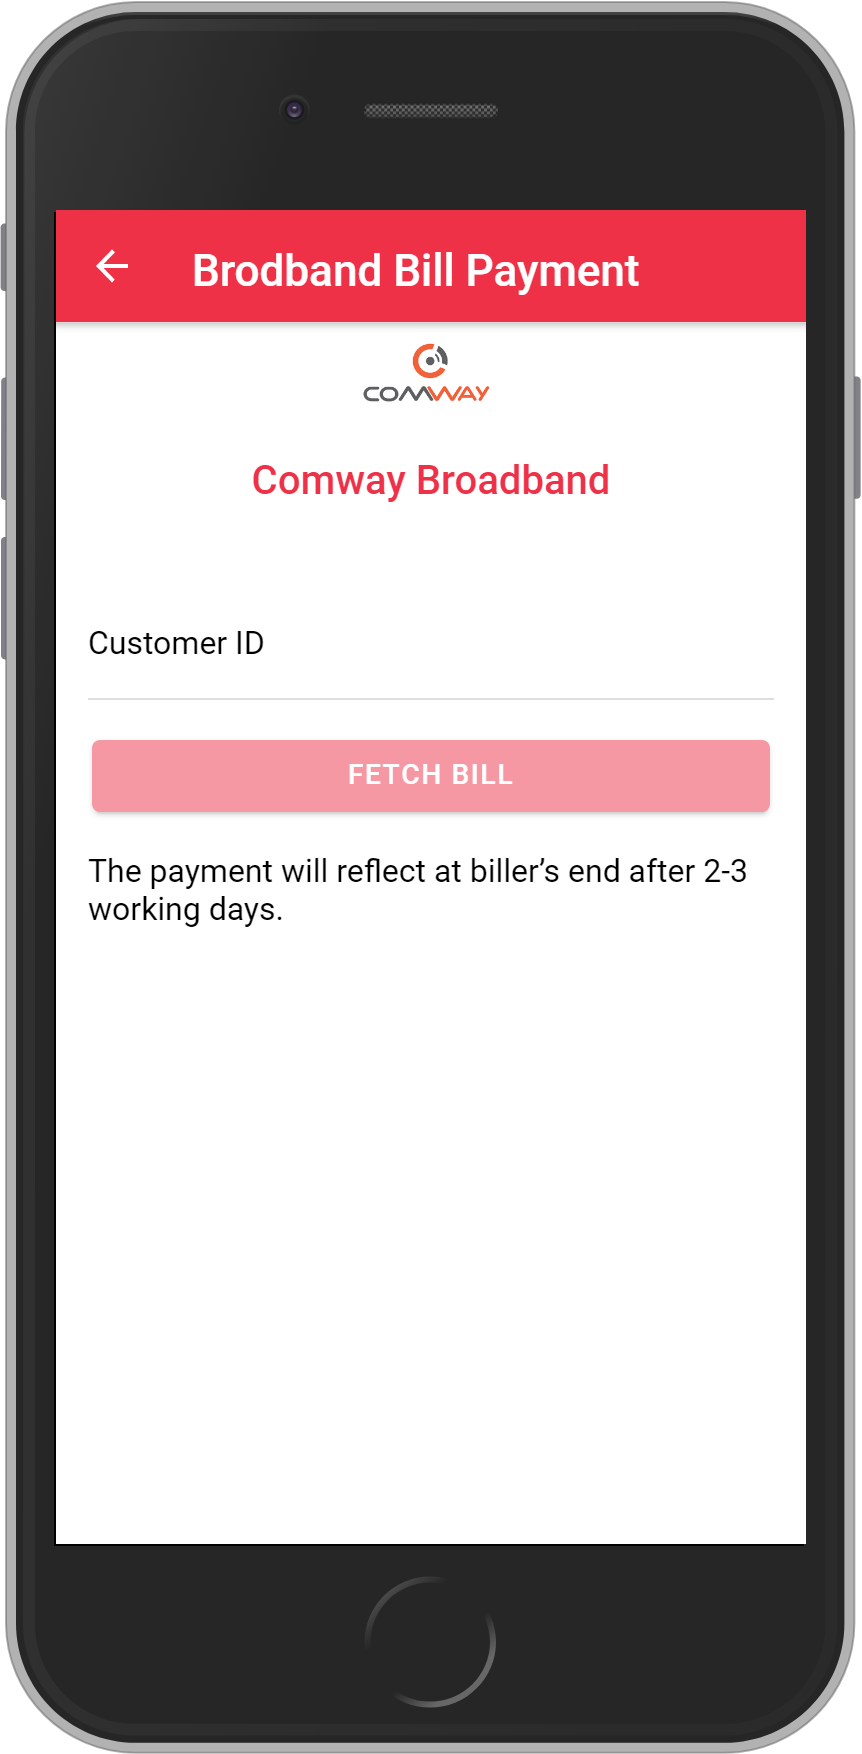 Get UNLIMITED <b>0.1%</b> CASHBACK on Comway Broadband Bill Payment.